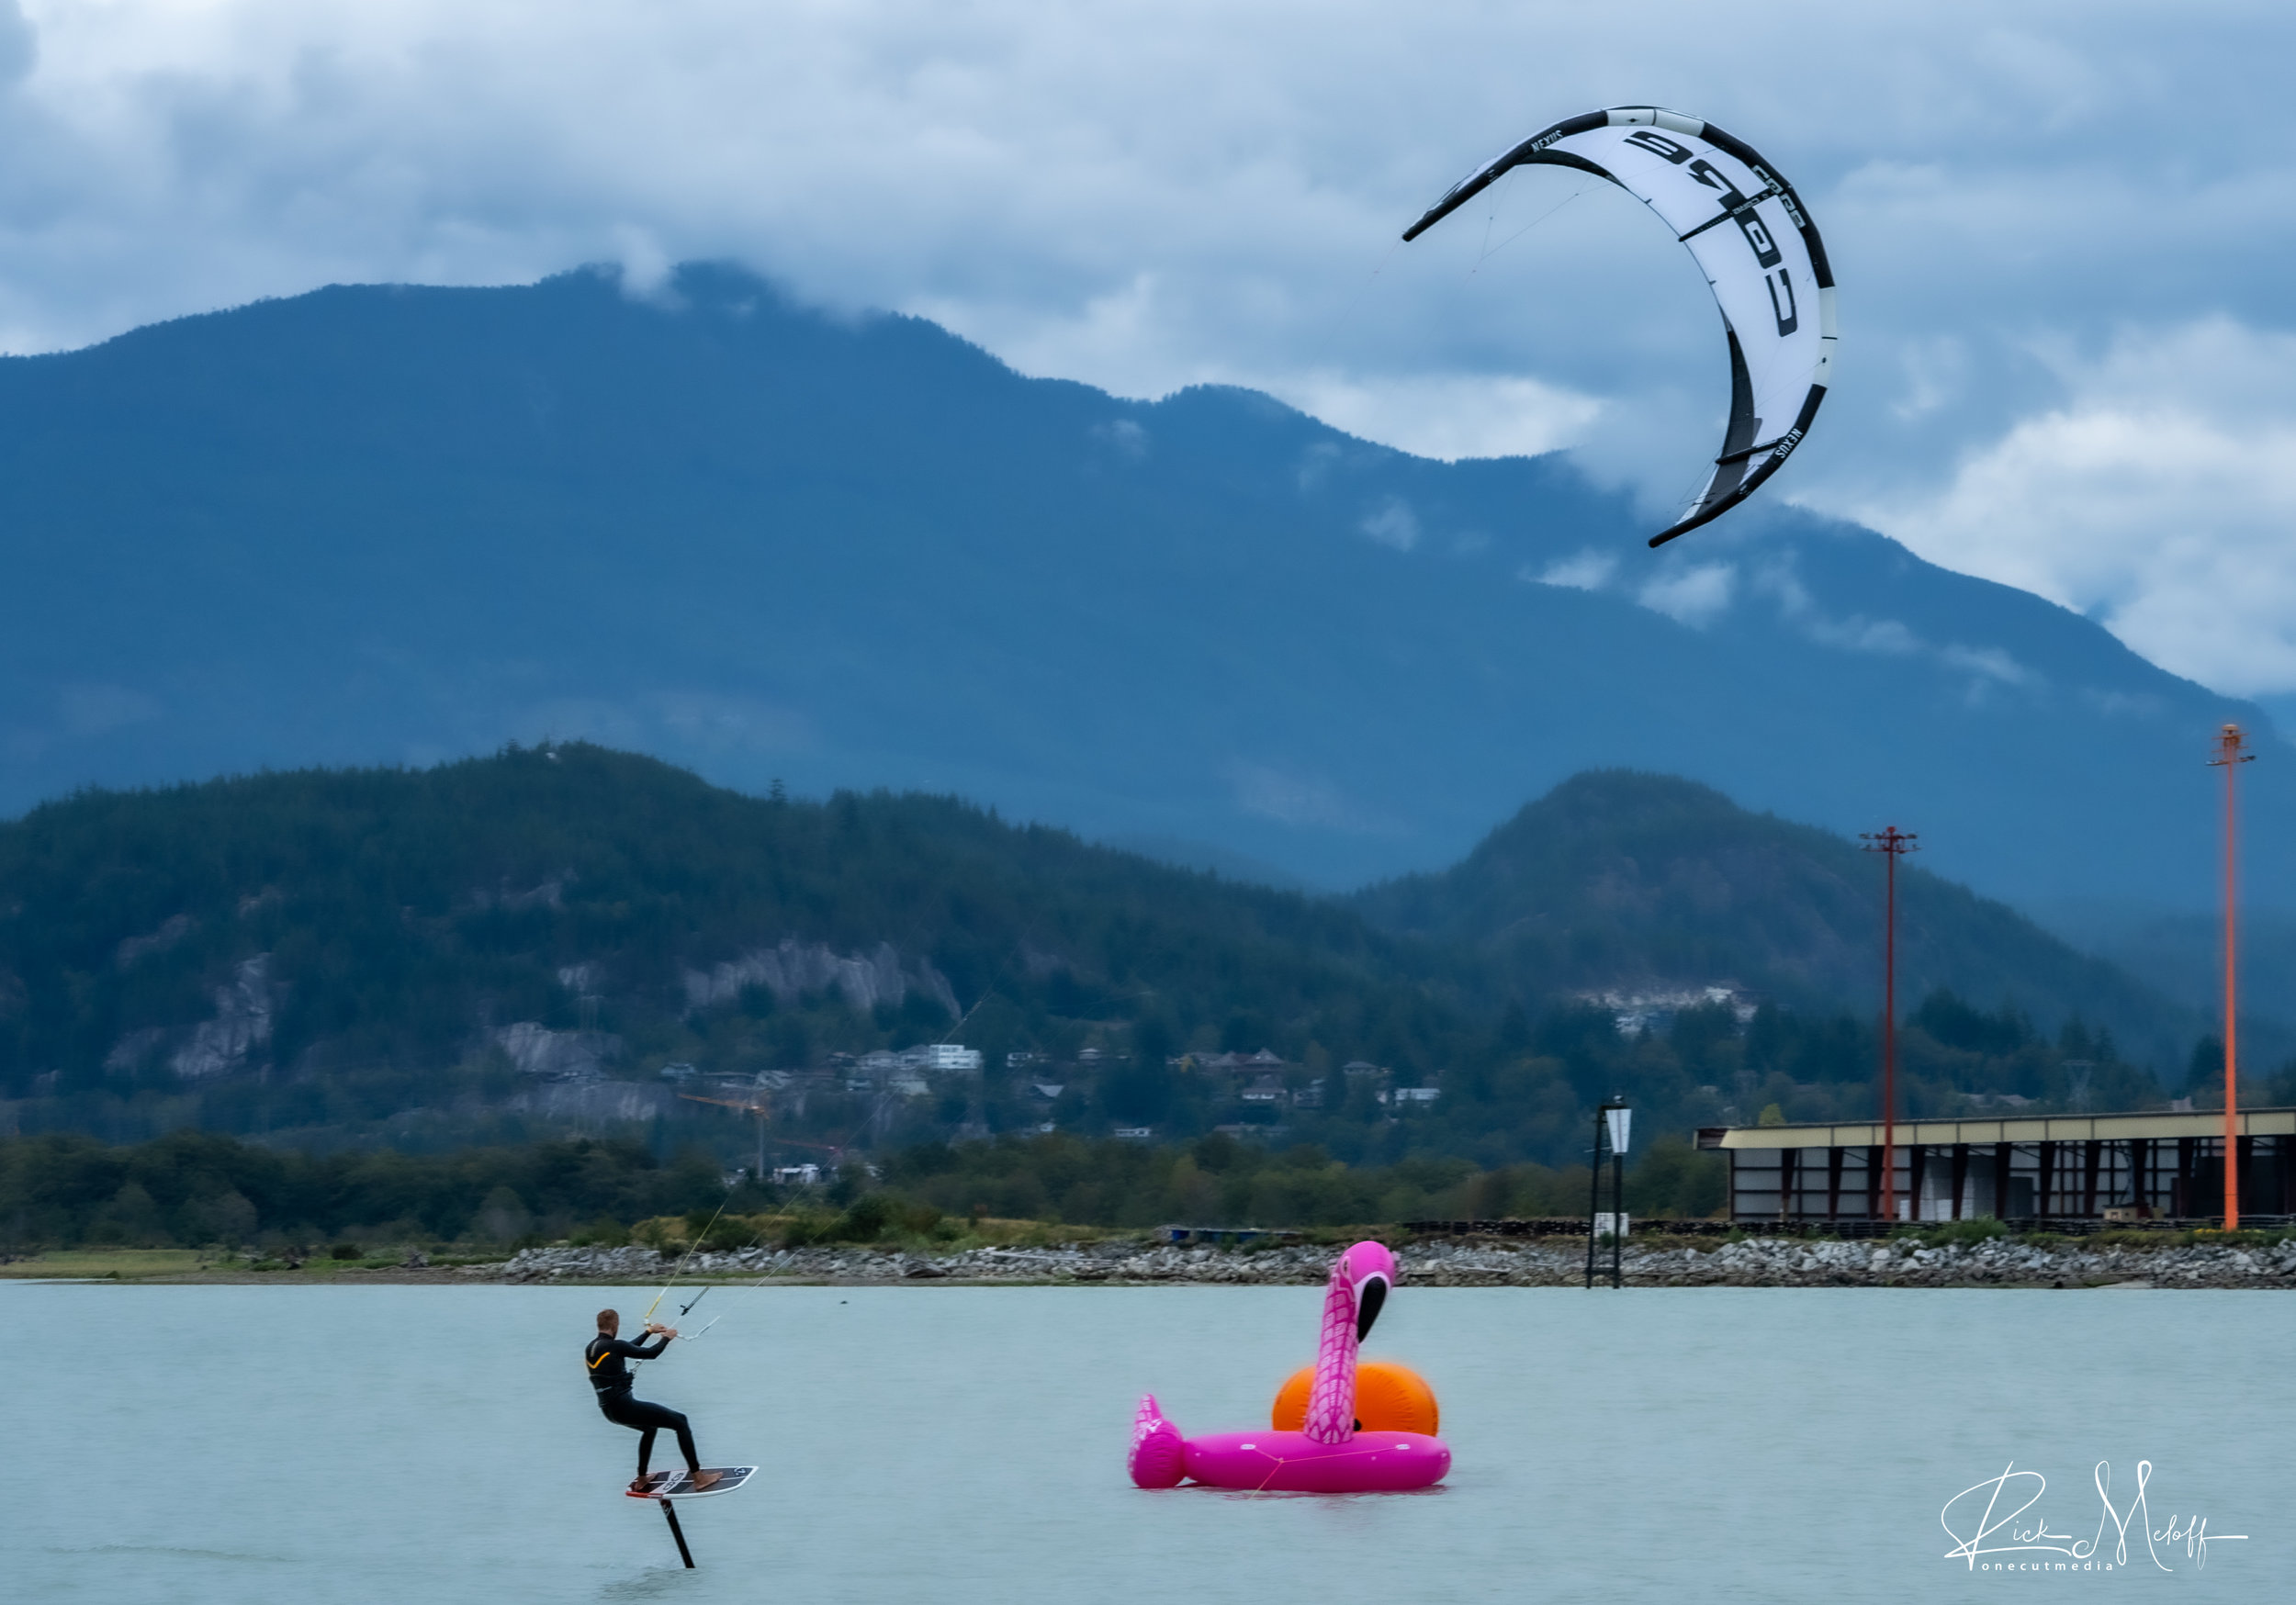 Steven Akkersdijk hydrofoiling in Squamish - Photo by Rick Meloff